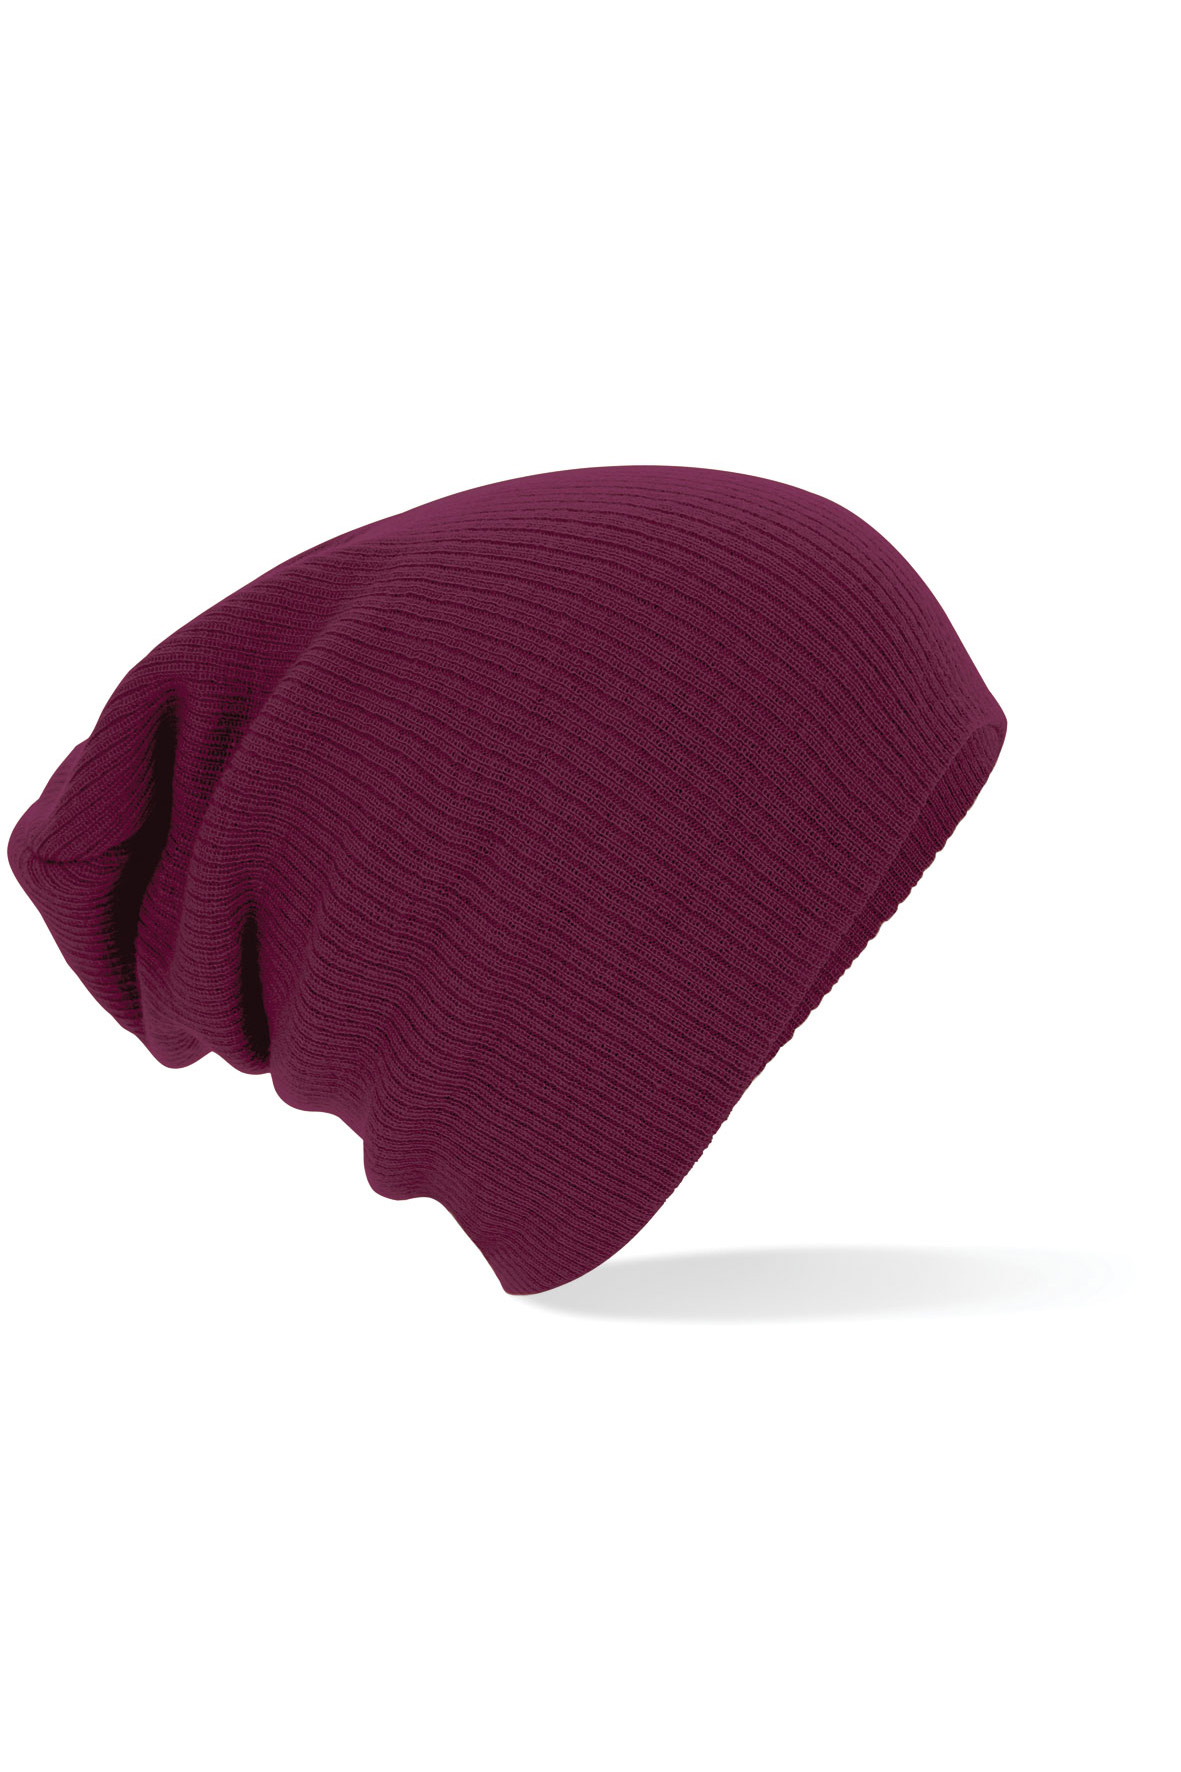 Slouch Pipo Burgundy